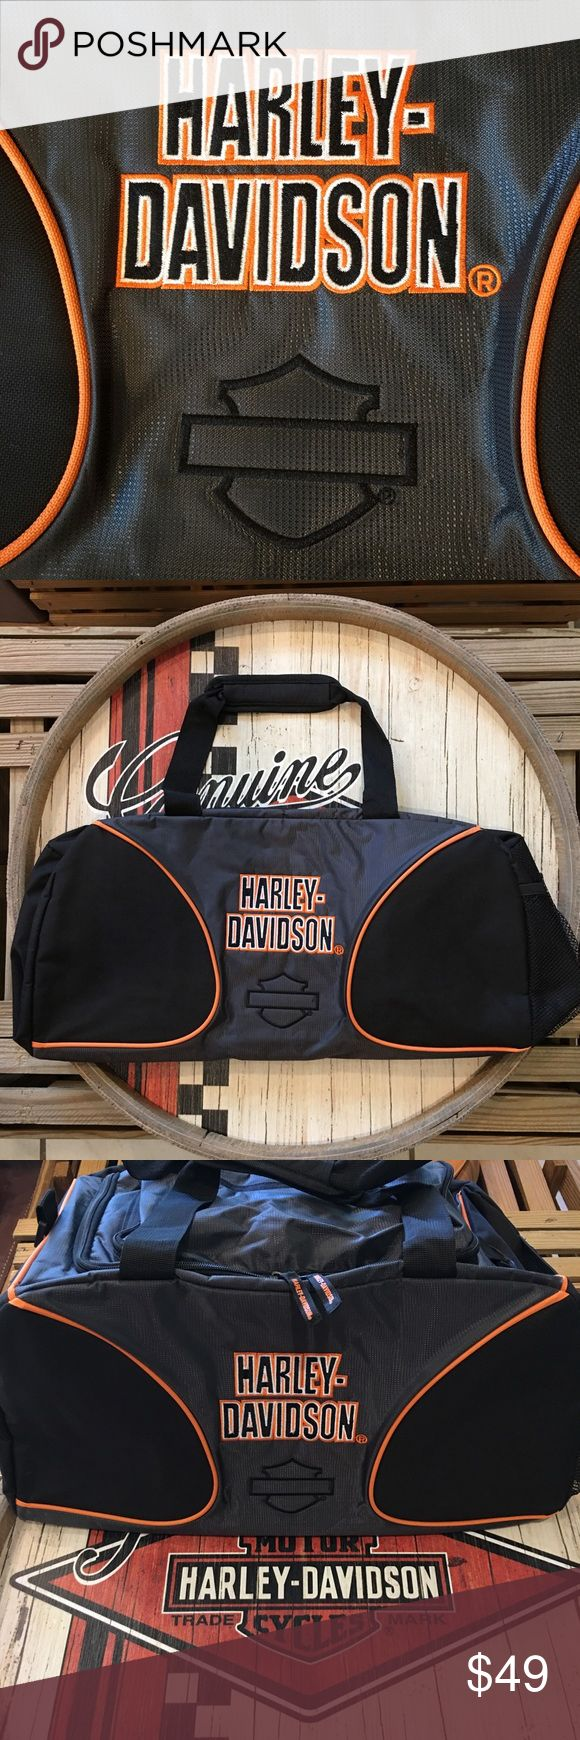 🔶◼️Harley-Davidson Duffle Bag Harley-Davidson ®Duffle Bag:                         * Perfect for Gyms  * Handy for Travel * Great for Riding * Lightweight * Collapsible * 3 Large Pockets * Zippered  * Velcro Handles                                       Price Firm unless bundled Harley-Davidson Bags Duffel Bags